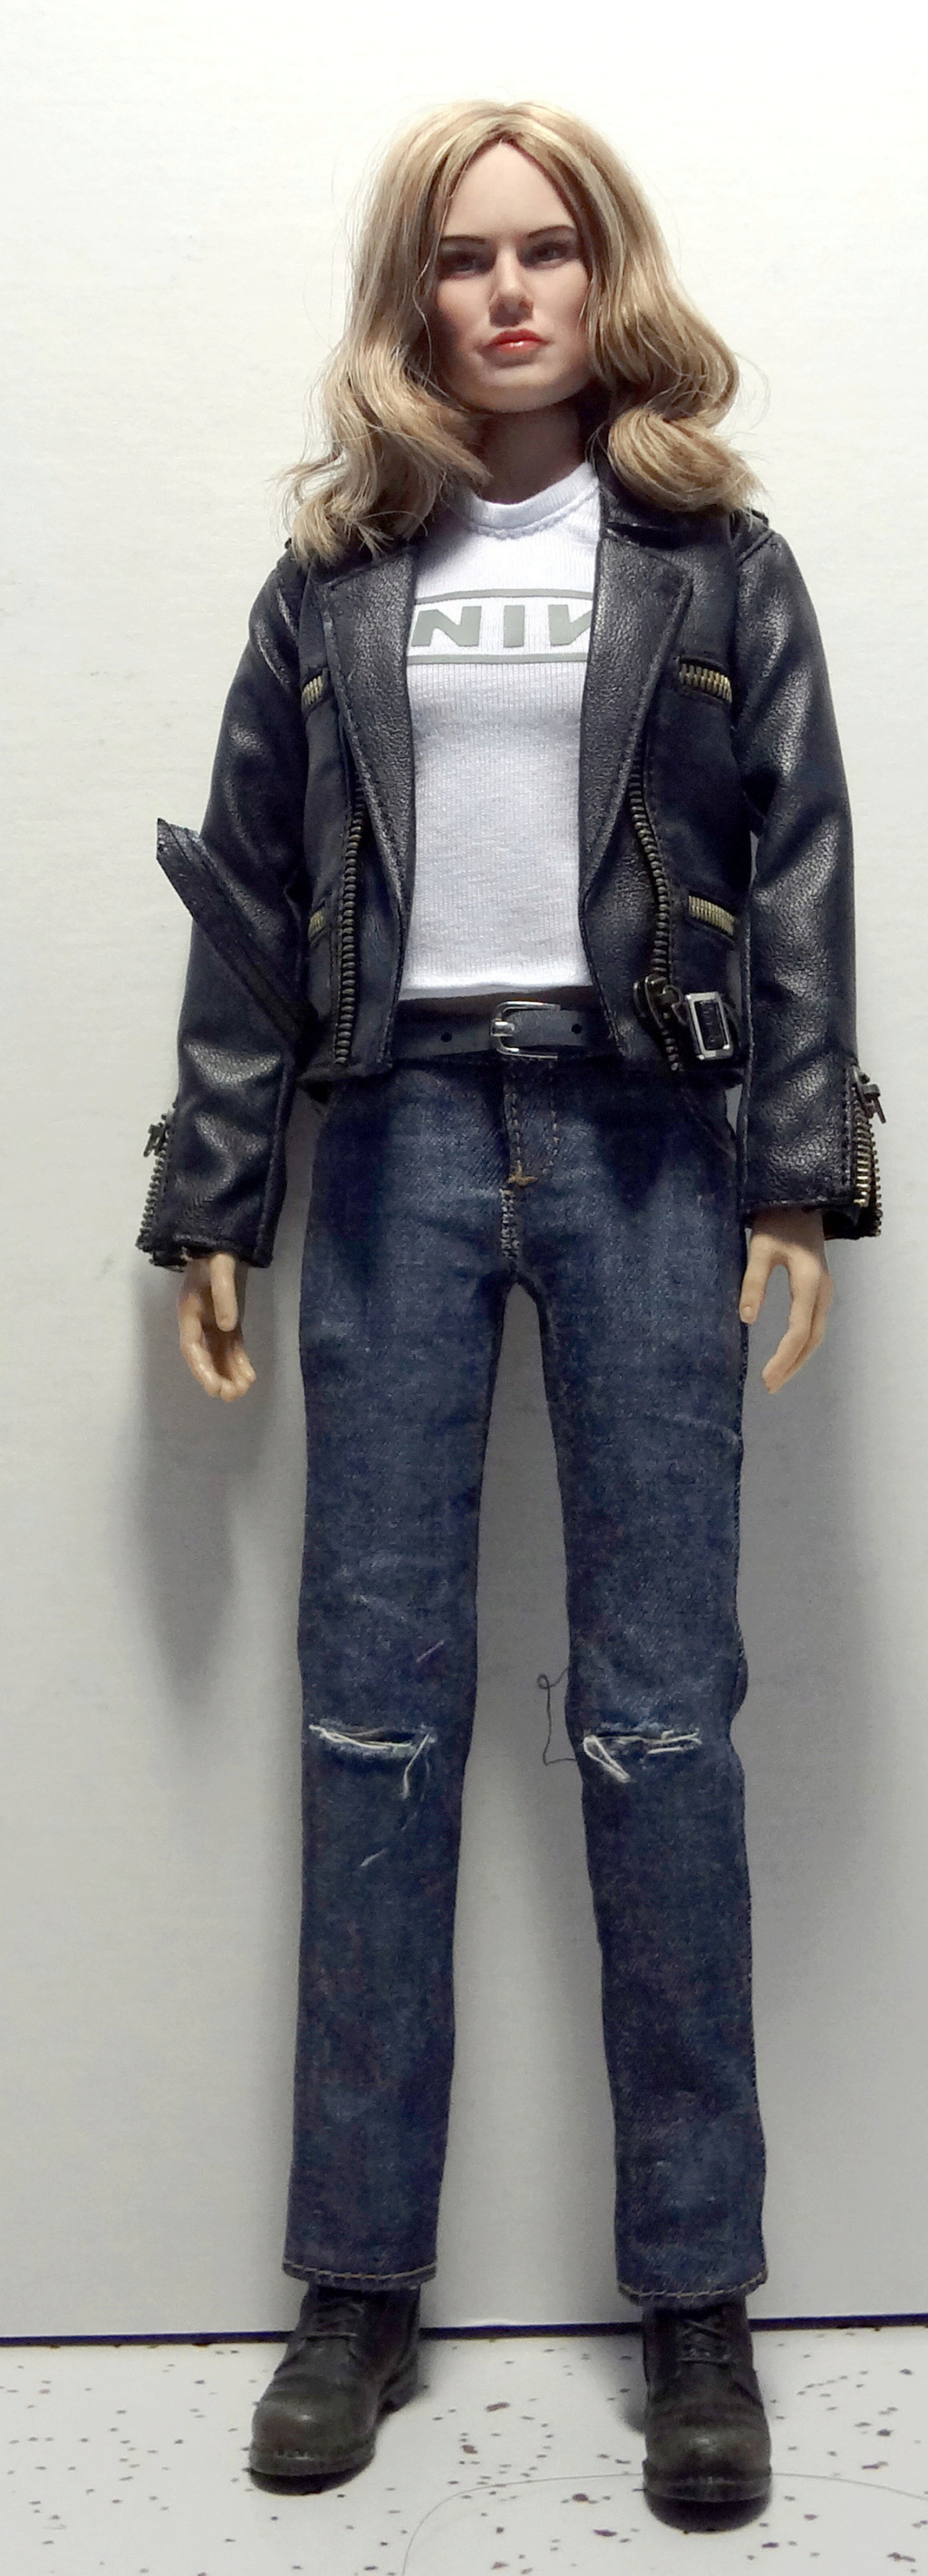 SWToys - NEW PRODUCT: Swtoys FS028 1/6 Scale Danvers figure Dsc00917